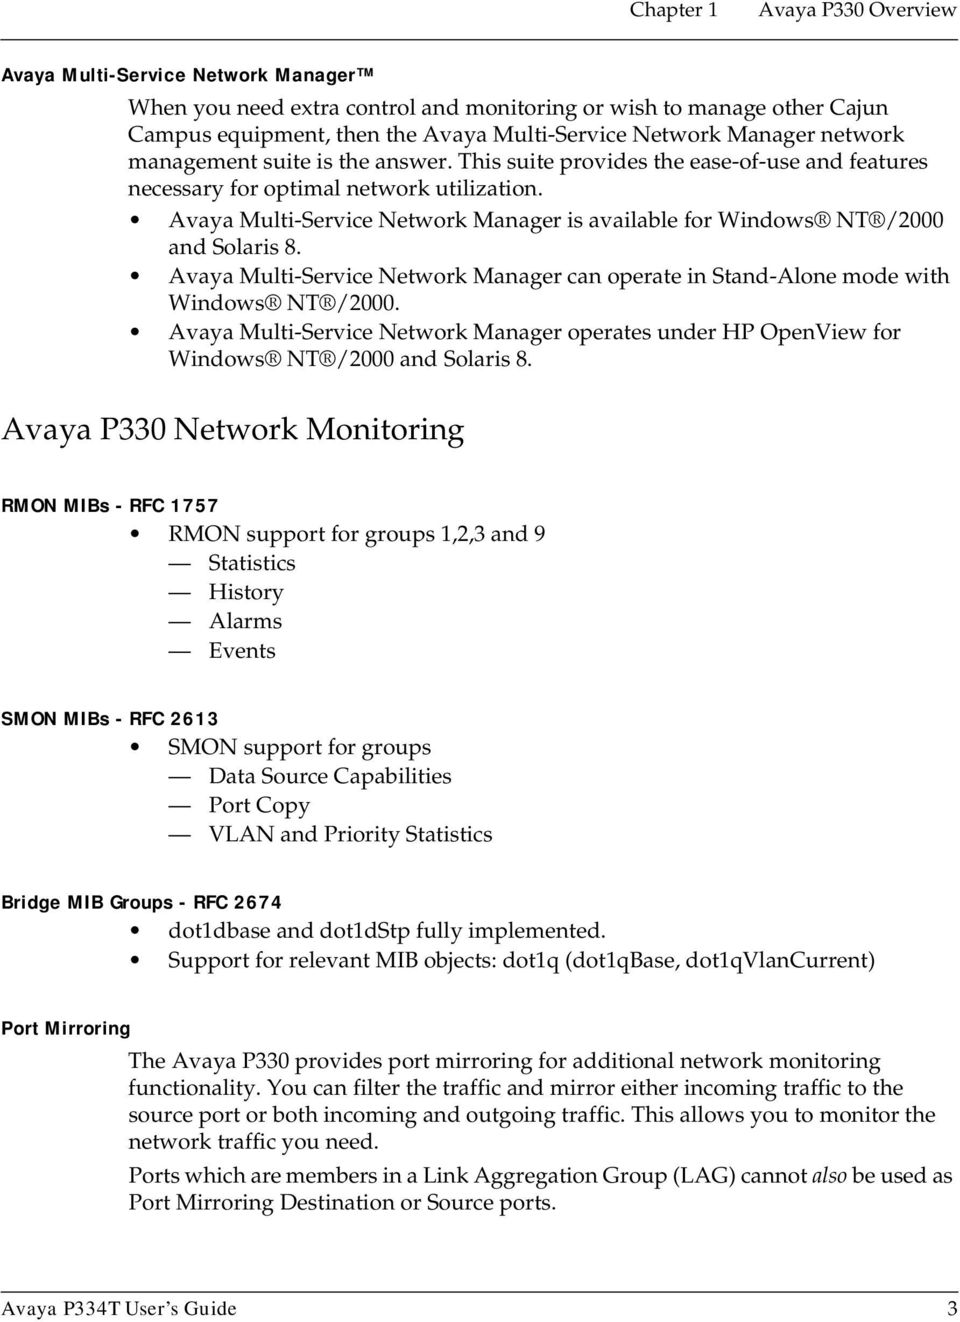 Avaya Multi-Service Network Manager is available for Windows NT /2000 and Solaris 8. Avaya Multi-Service Network Manager can operate in Stand-Alone mode with Windows NT /2000.